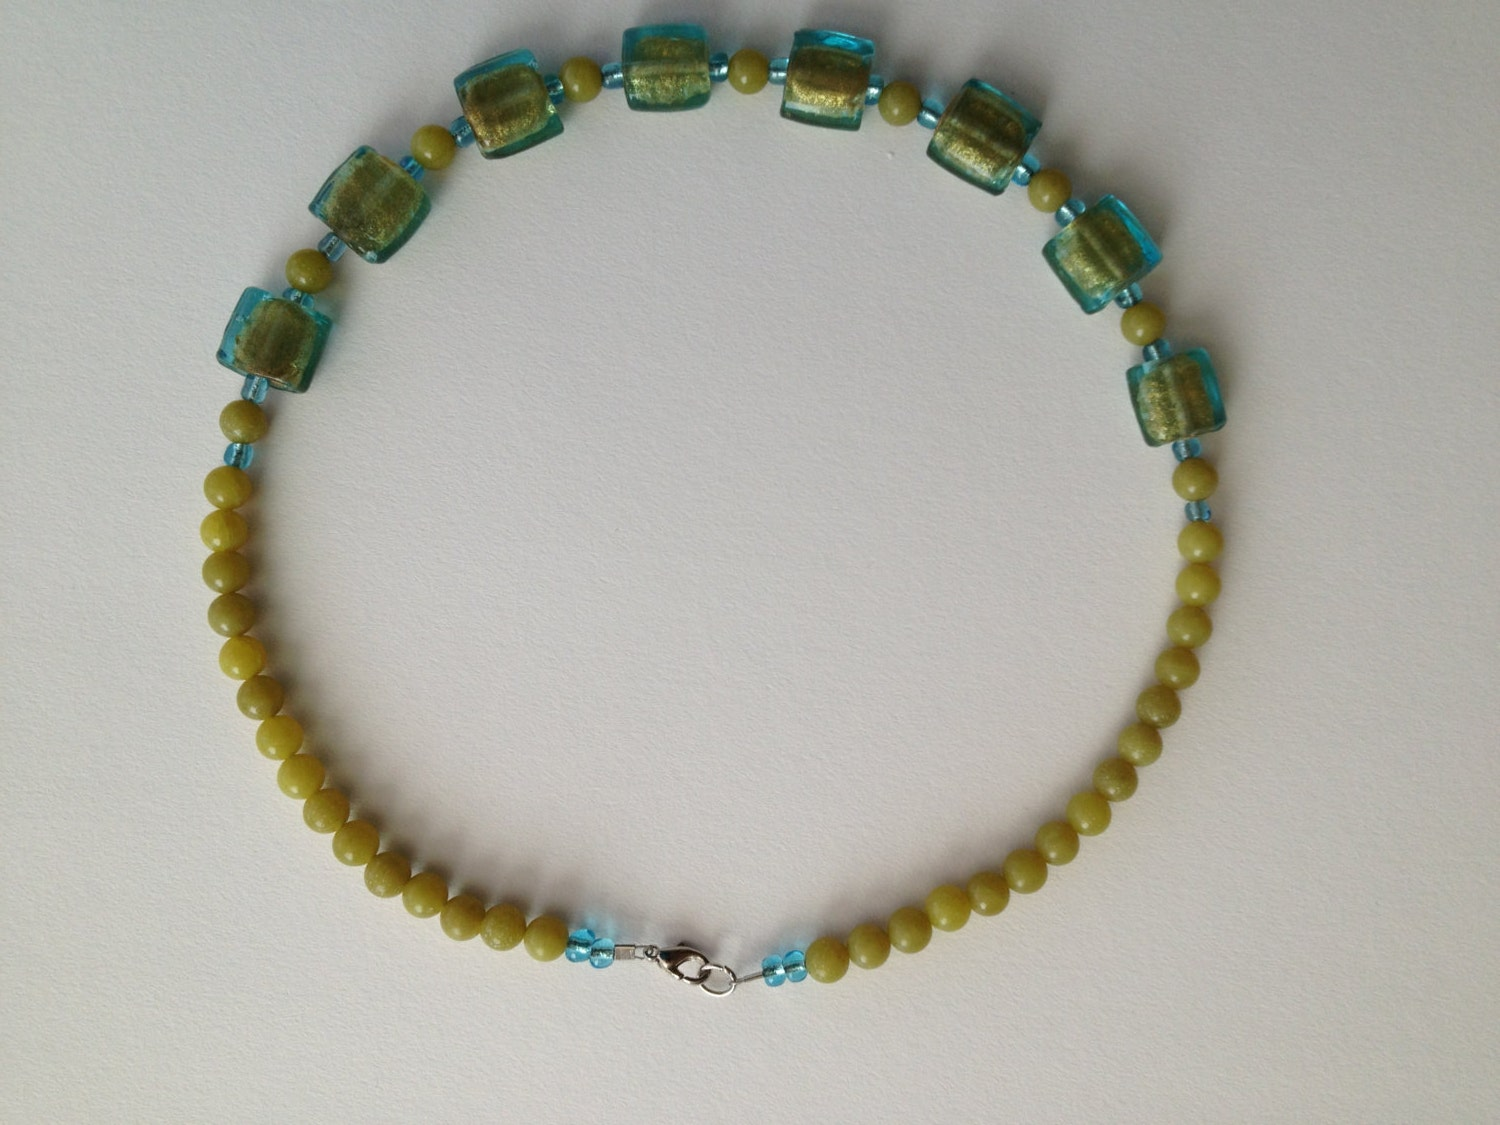 Light blue and lime green beads necklace - Handmade - Glass beads necklace